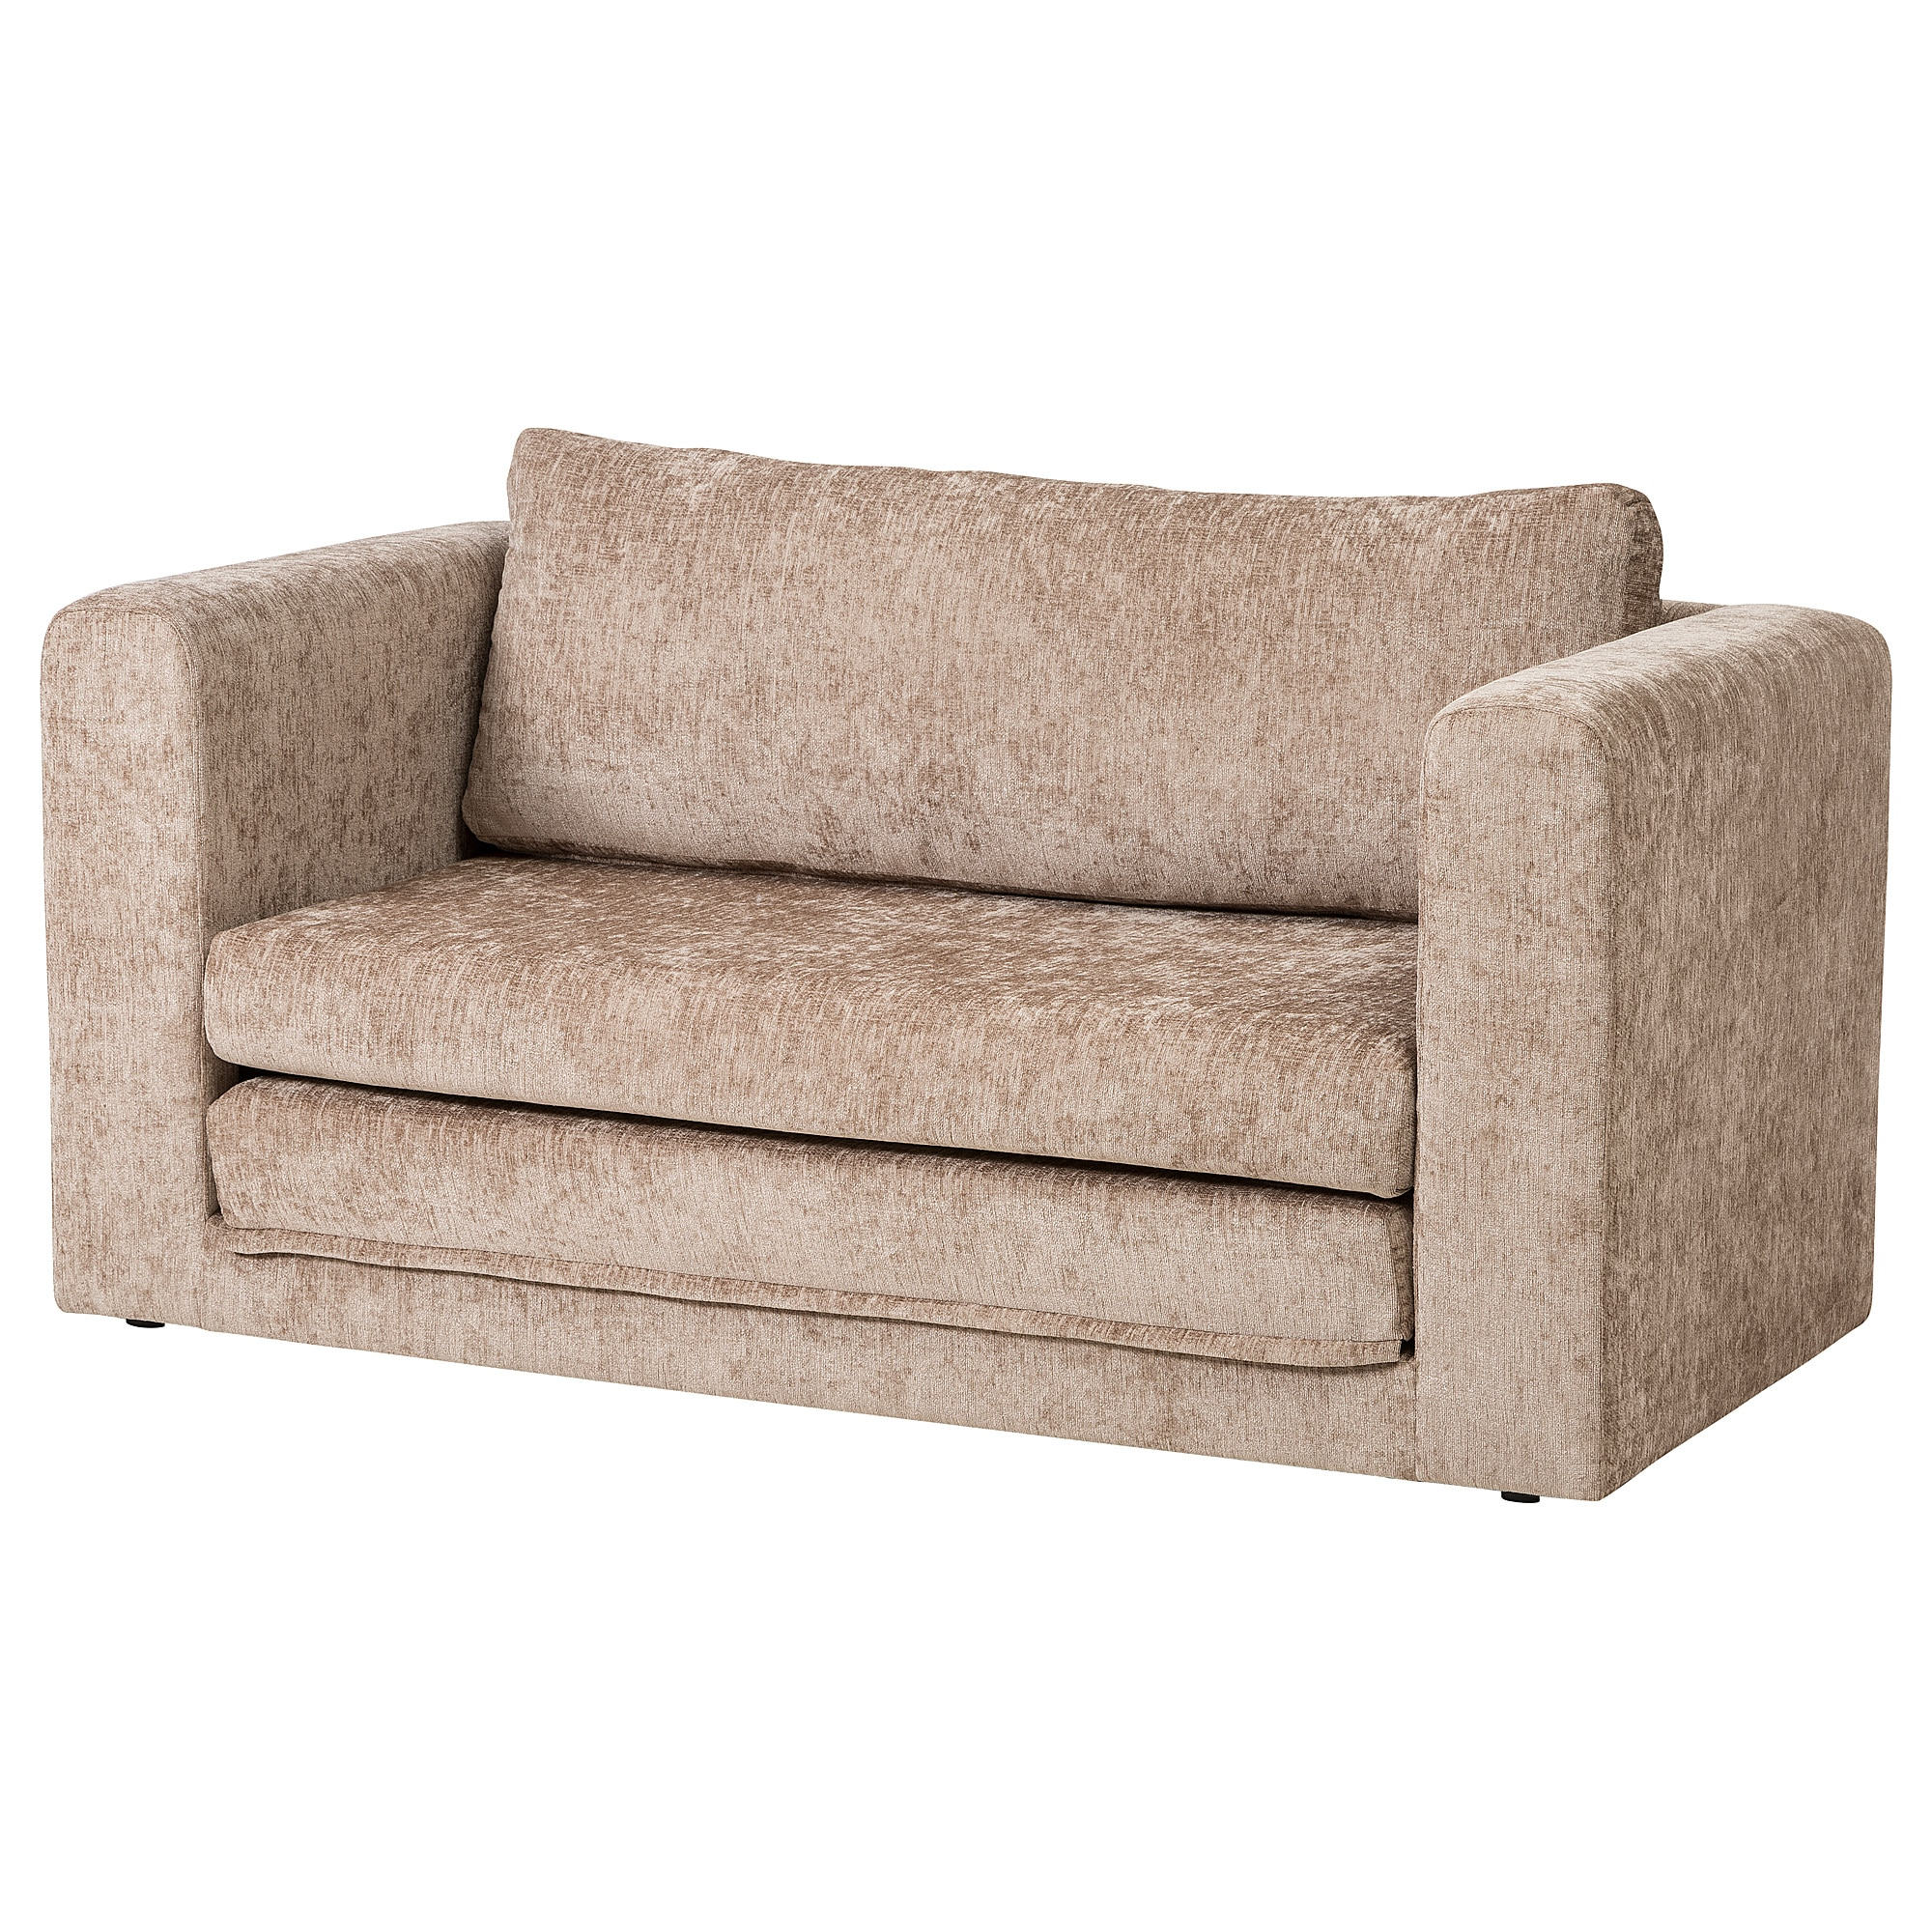 best service 41d32 691dc 2-seat sofa-bed ASKEBY beige